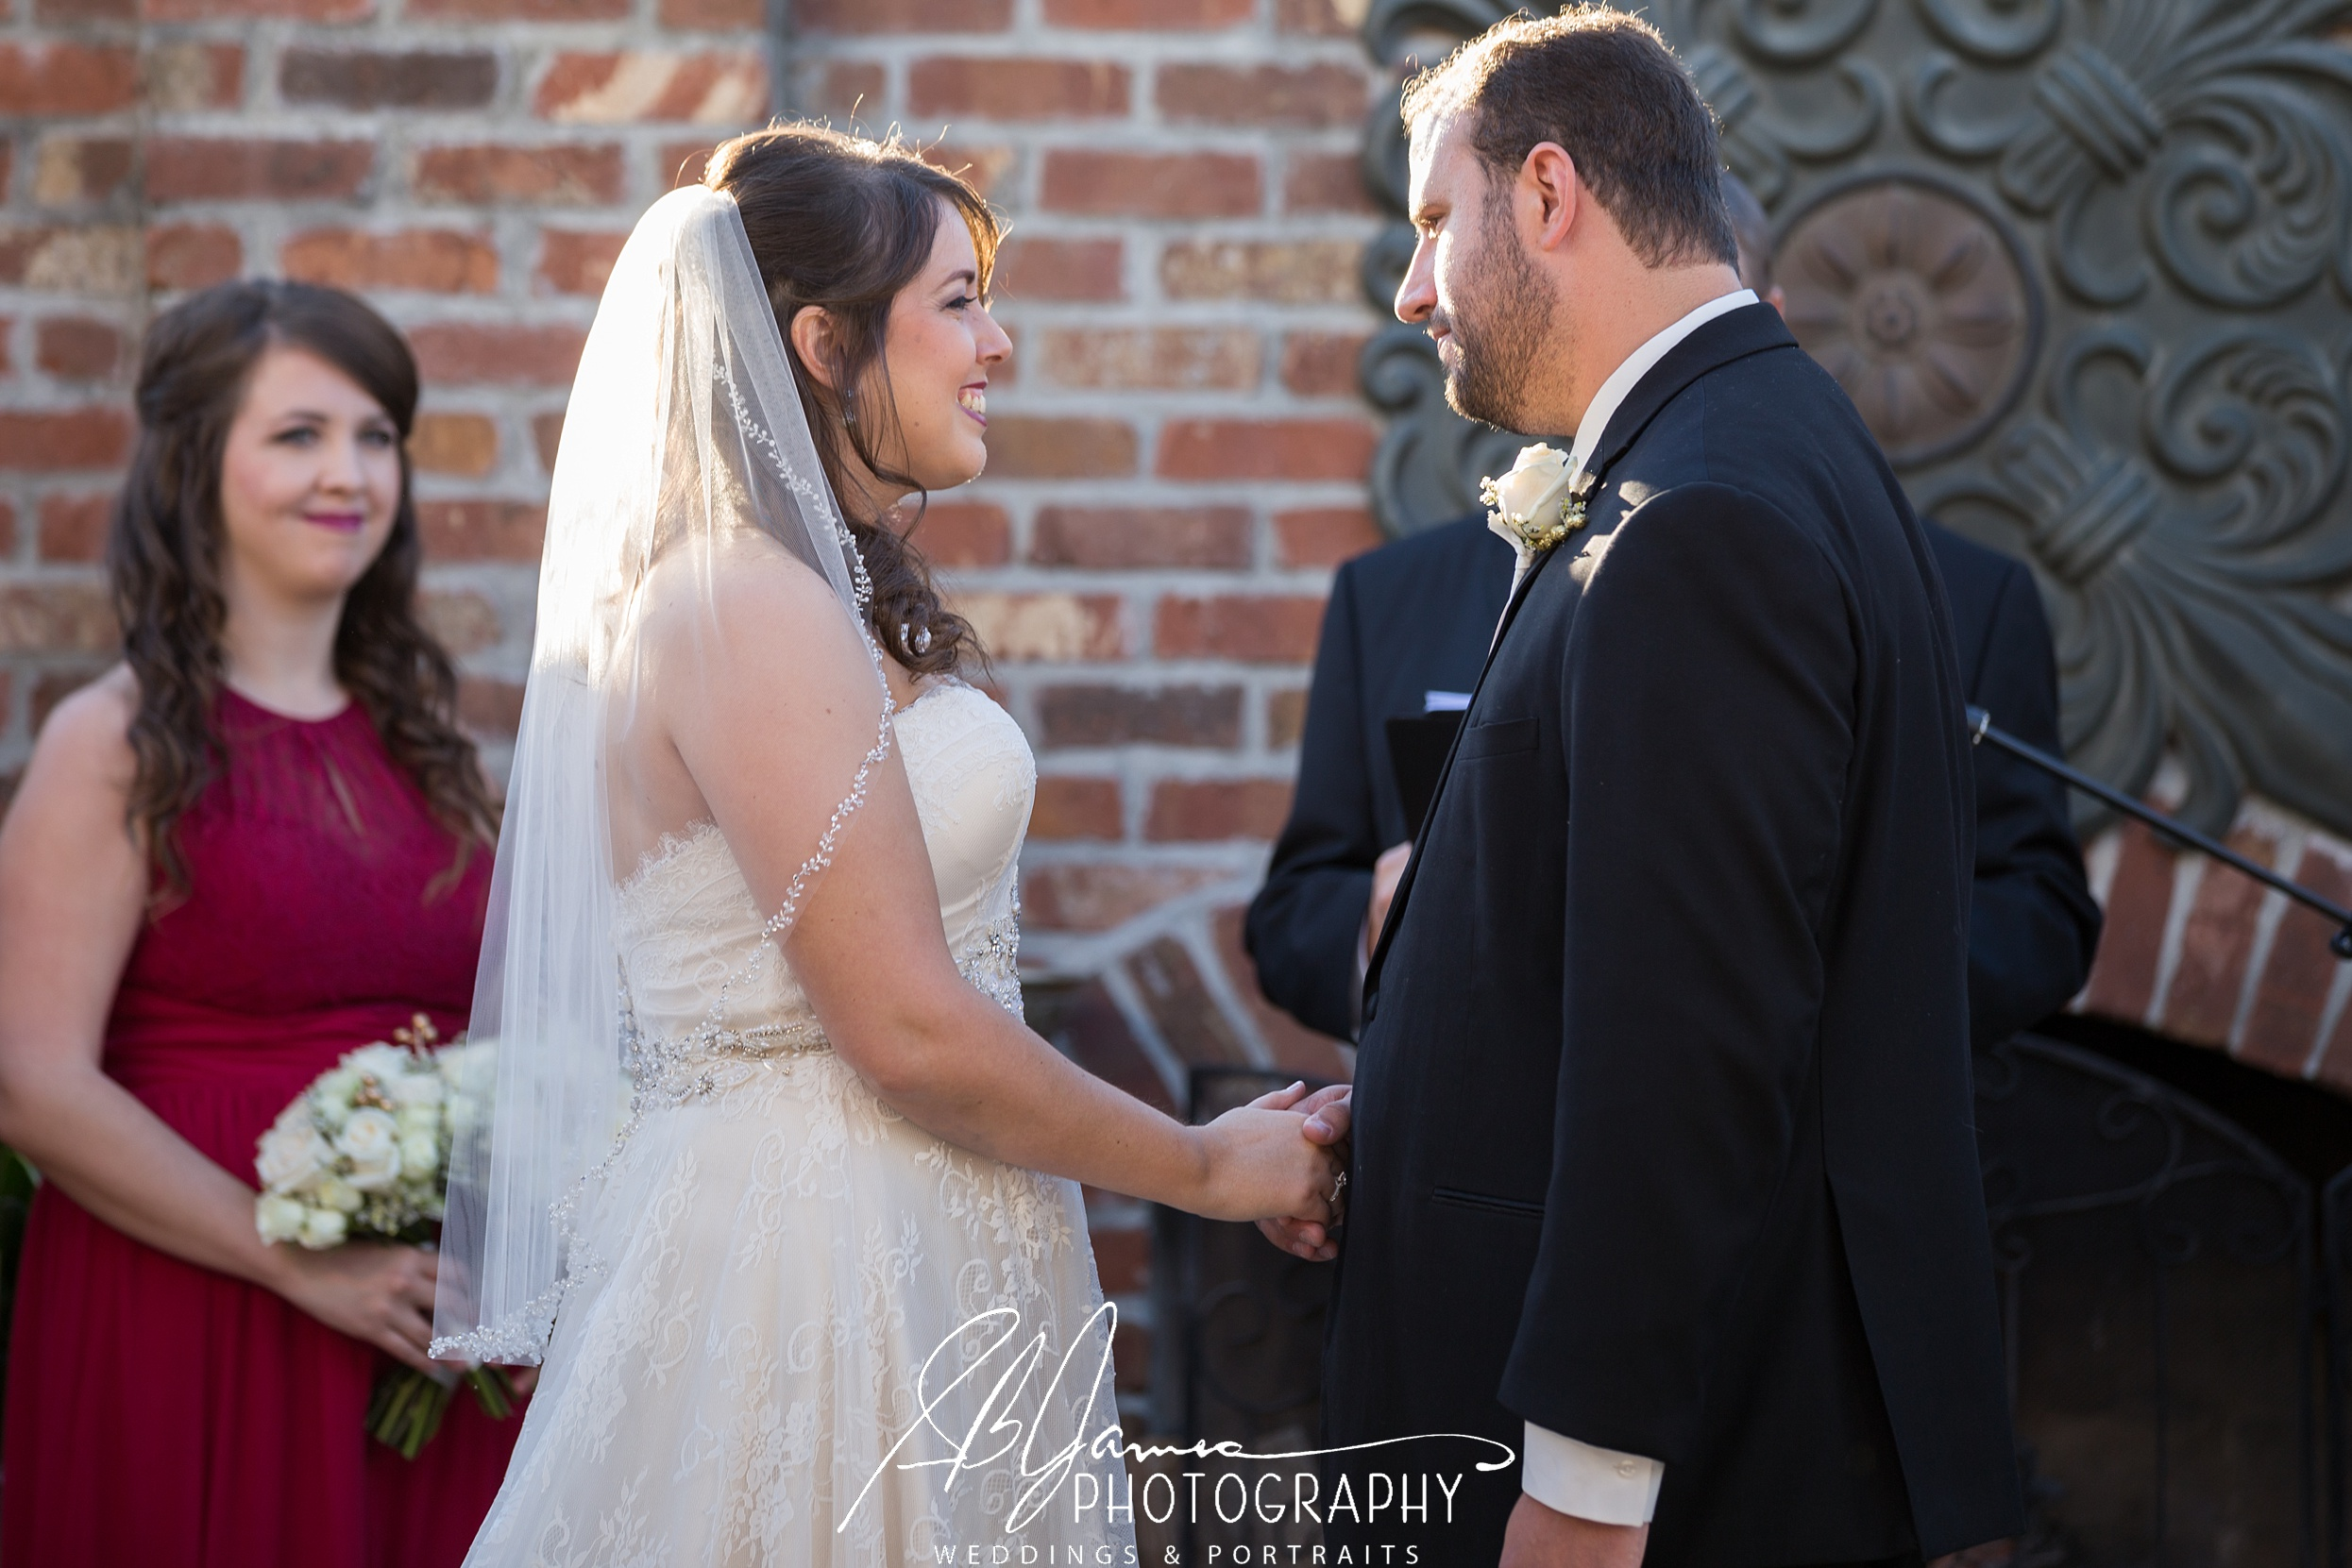 New Orleans, Baton Rouge, bride, groom, wedding, gonzales, baton rouge photographer ido wedding bride groom wedding weddingphotography louisianaphotography louisianaweddings batonrougeweddings gonzaleswedding gonzalesweddings gonzalesphotography